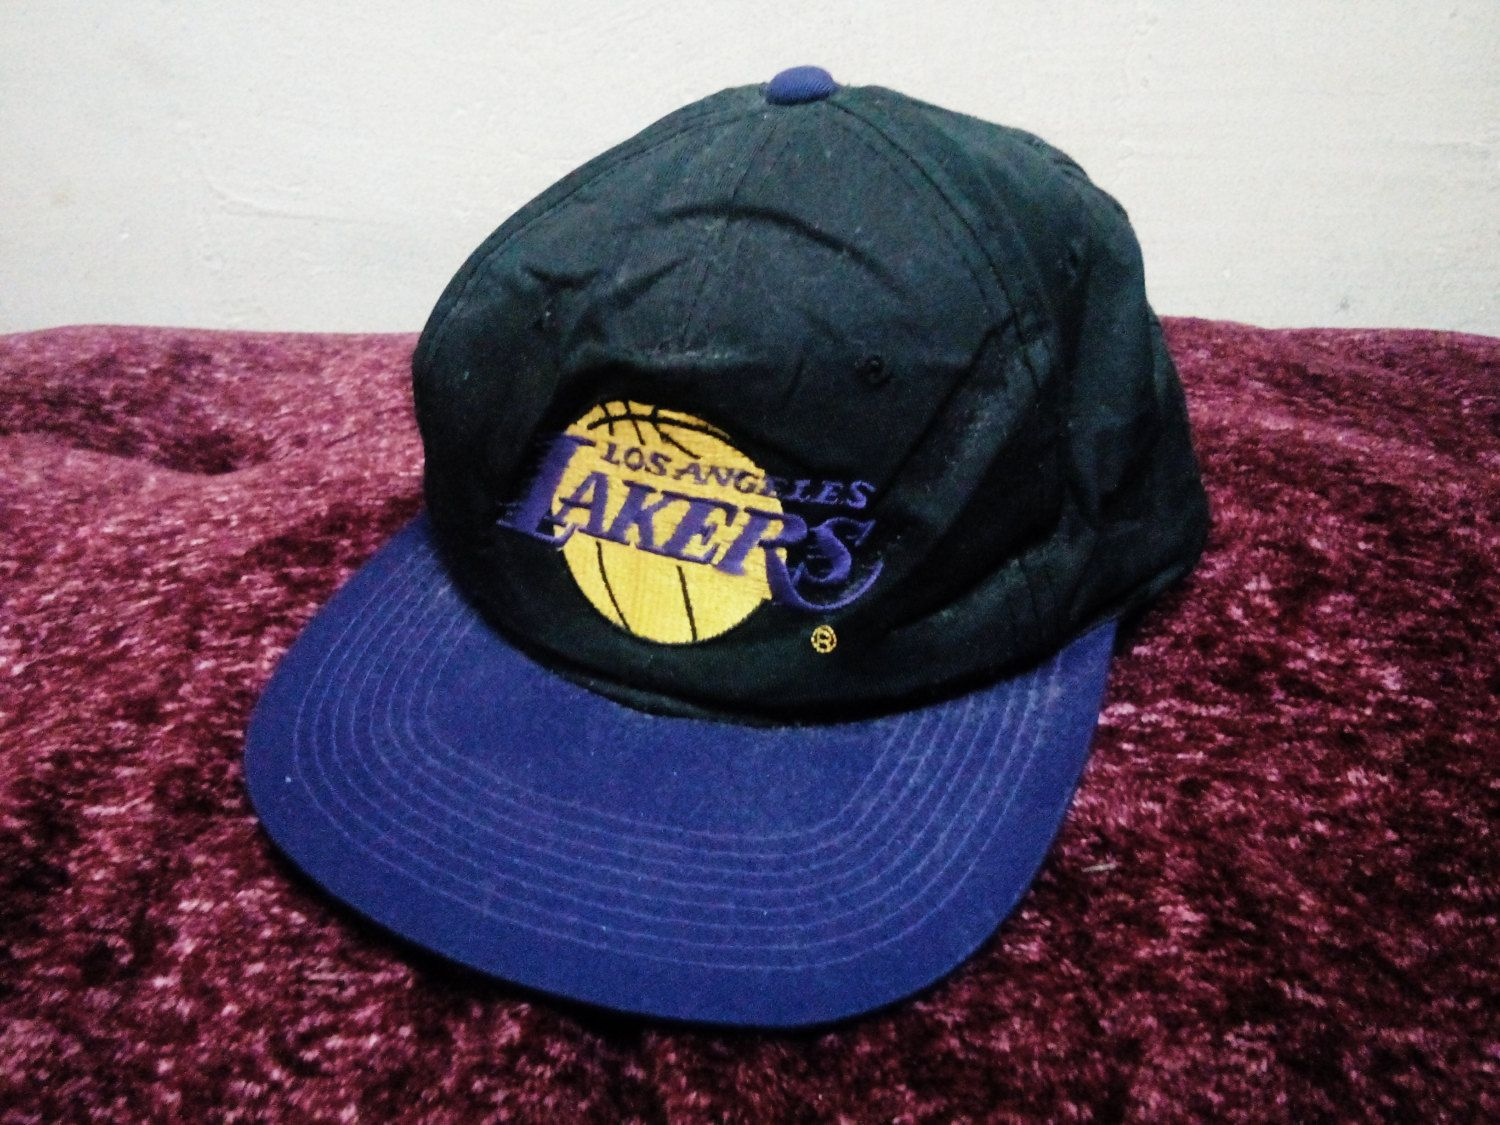 3148bb6bfa056 Vintage L.A Lakers Basketball Caps Big Logo Designs NBA 90 s Era Celebrity  Fashion style Fabulous Swag hip hop Free Size by Psychovault on Etsy